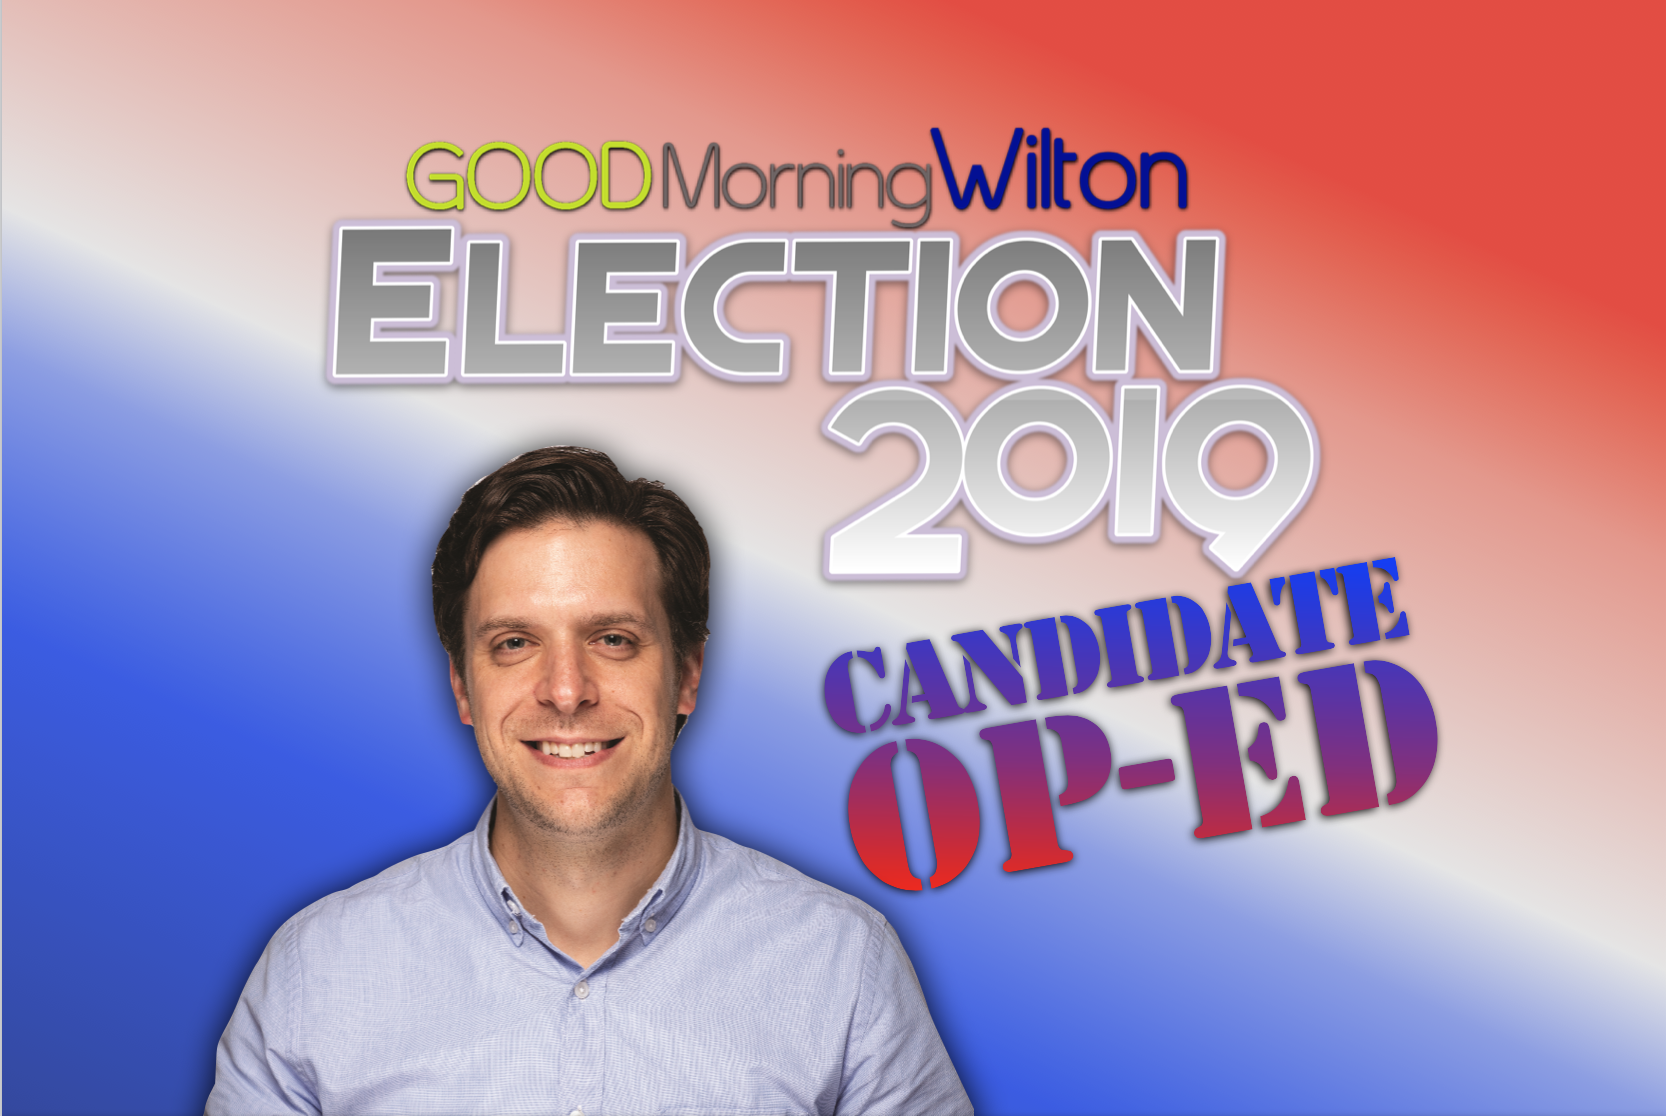 Election2019 Candidate OP-ED:  Kevin Gardiner, Board of Finance